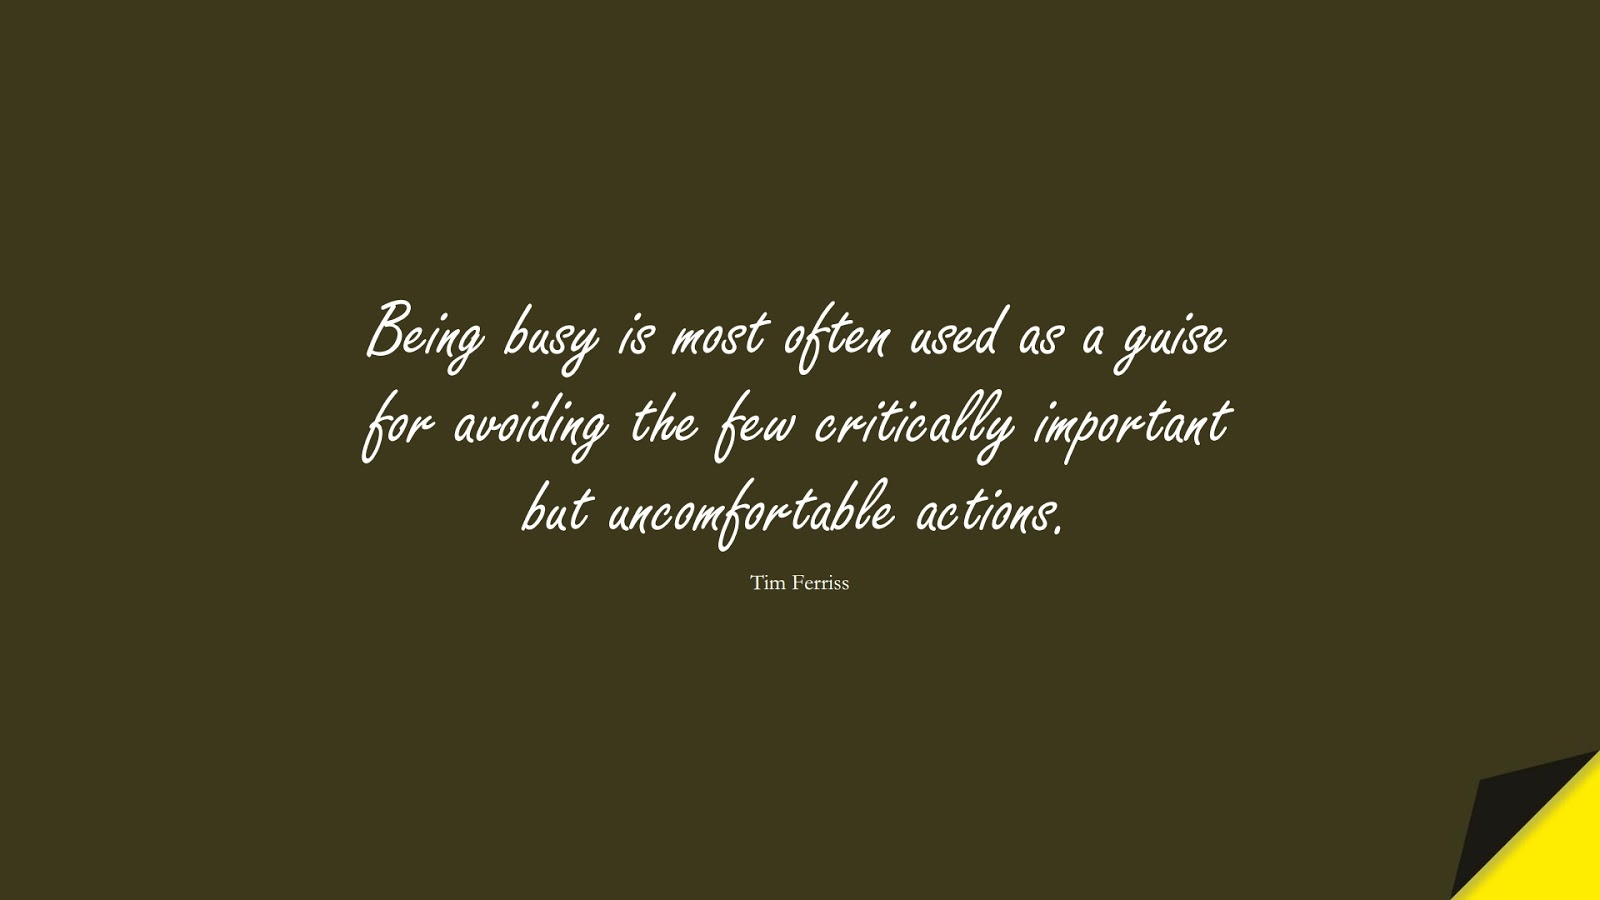 Being busy is most often used as a guise for avoiding the few critically important but uncomfortable actions. (Tim Ferriss);  #TimFerrissQuotes